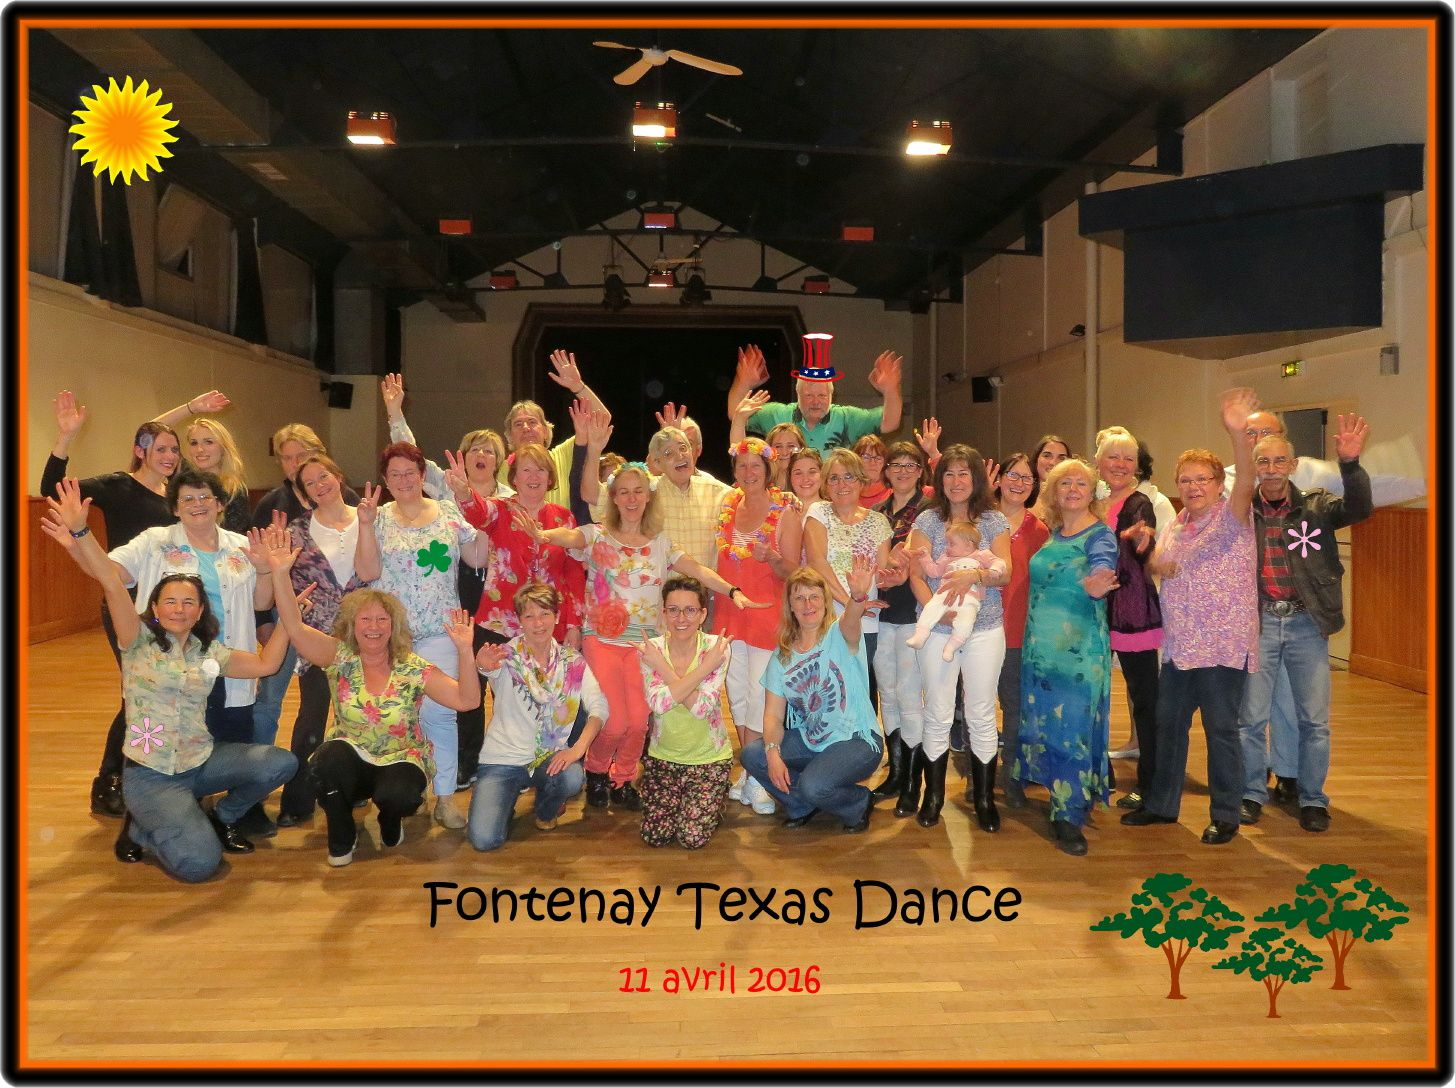 BIENVENUE à FONTENAY TEXAS DANCE